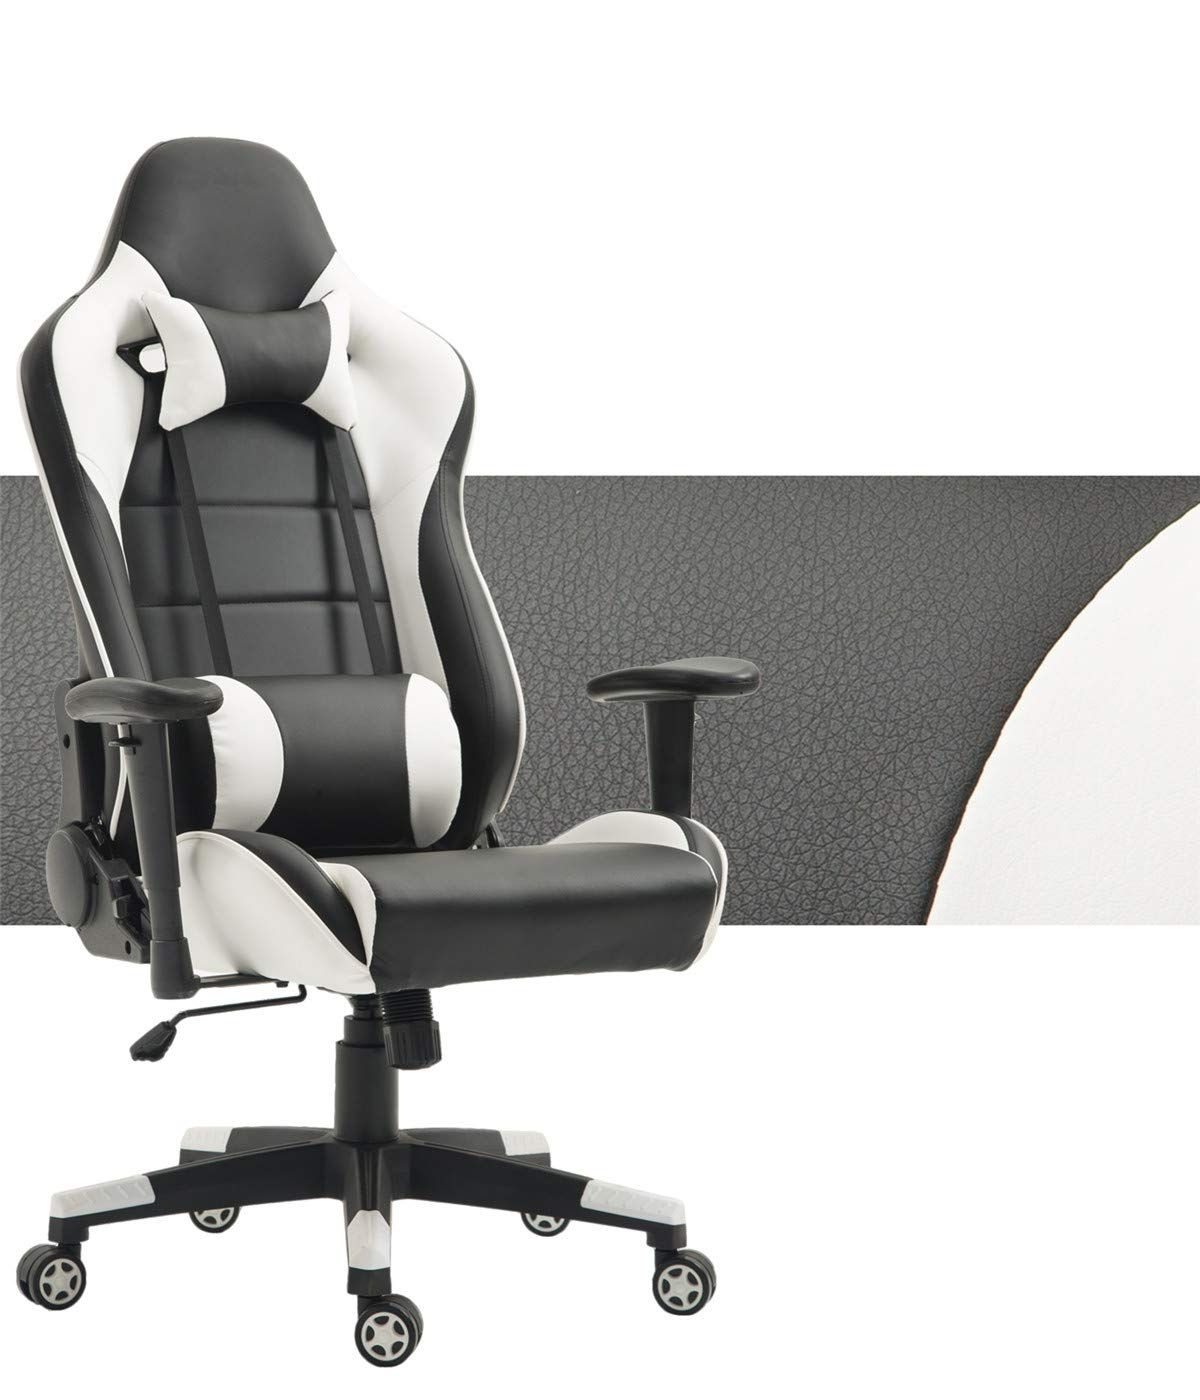 Gaming Chair Adjustable Swivel Chair High Back Racing Computer Chair PU Leather Desk Chair Ergonomic Reclining E-Sports Chair with Headrest and Lumbar Support Black